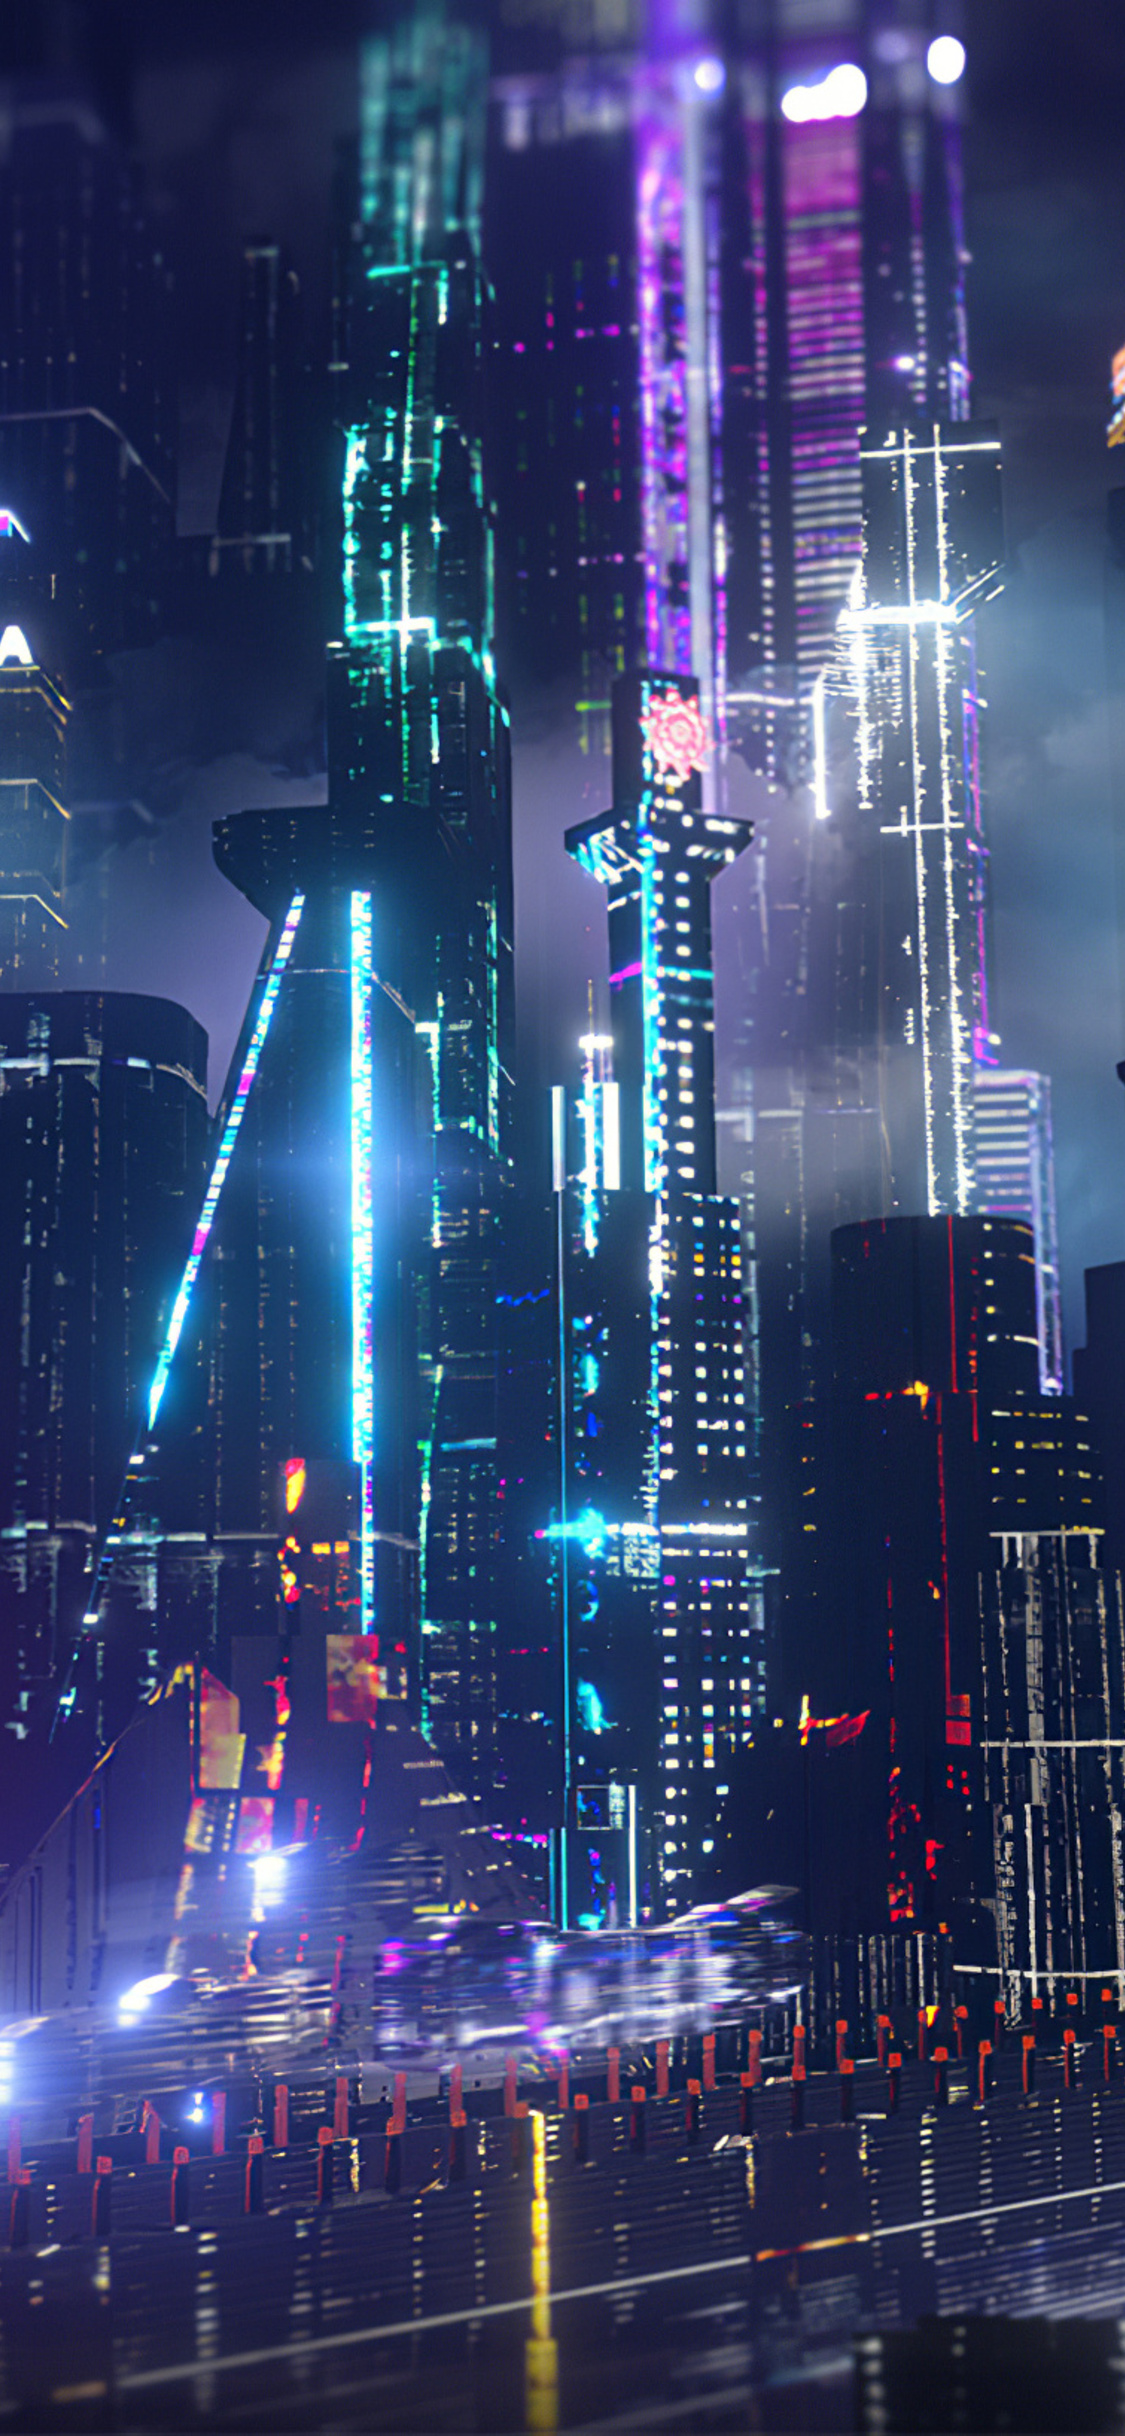 1125x2436 Neon City Lights 4k Iphone Xs Iphone 10 Iphone X Hd 4k Wallpapers Images Backgrounds Photos And Pictures